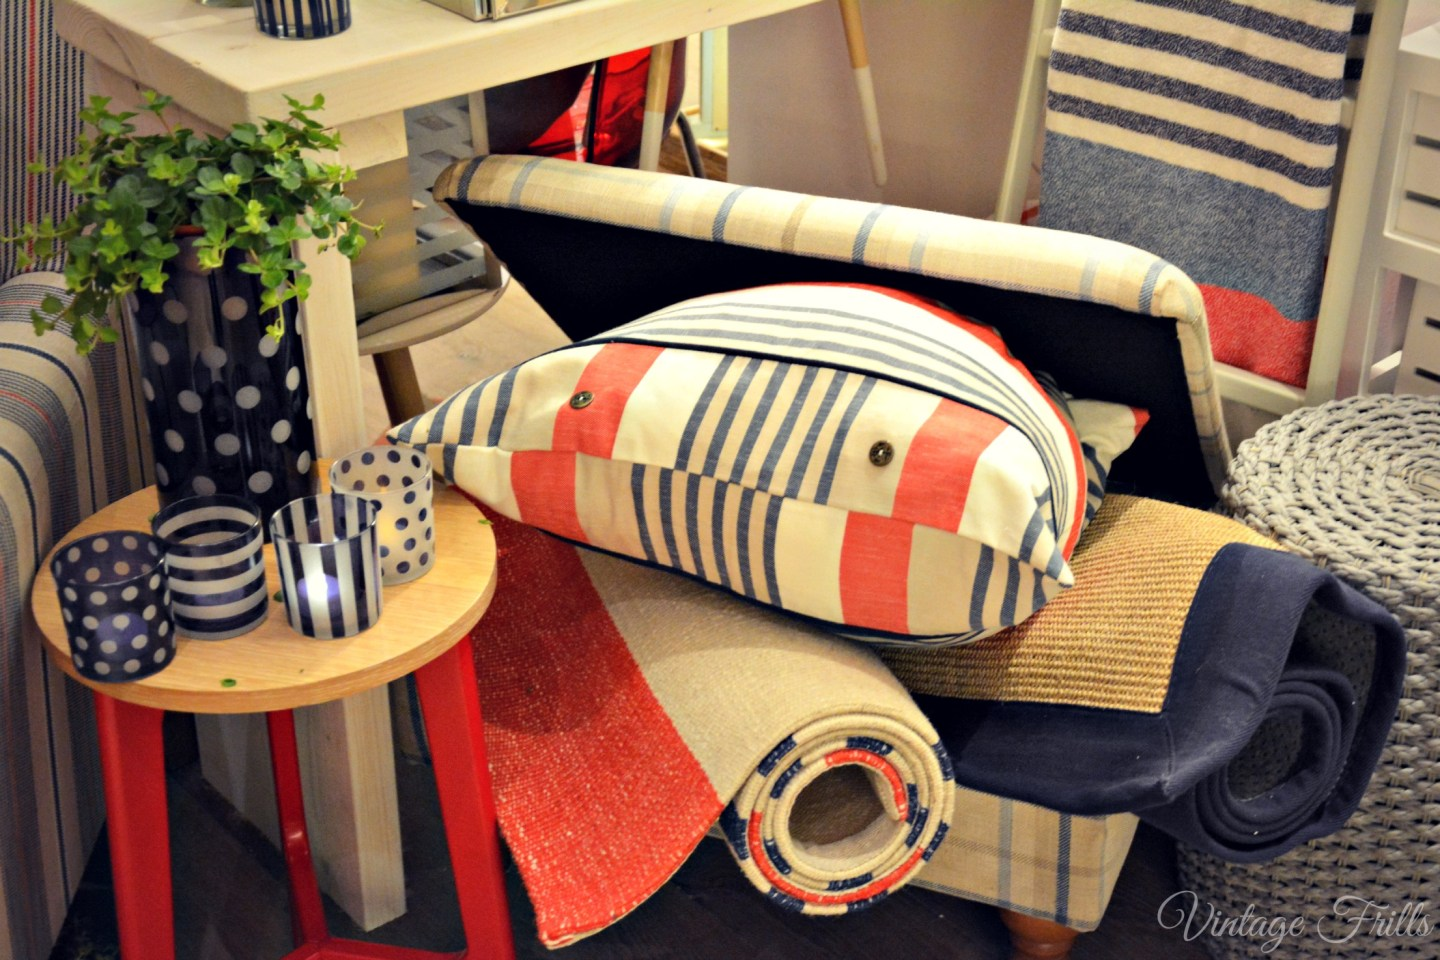 Next Home Summer 15 Press Day Red and Blue Nautical Homewares